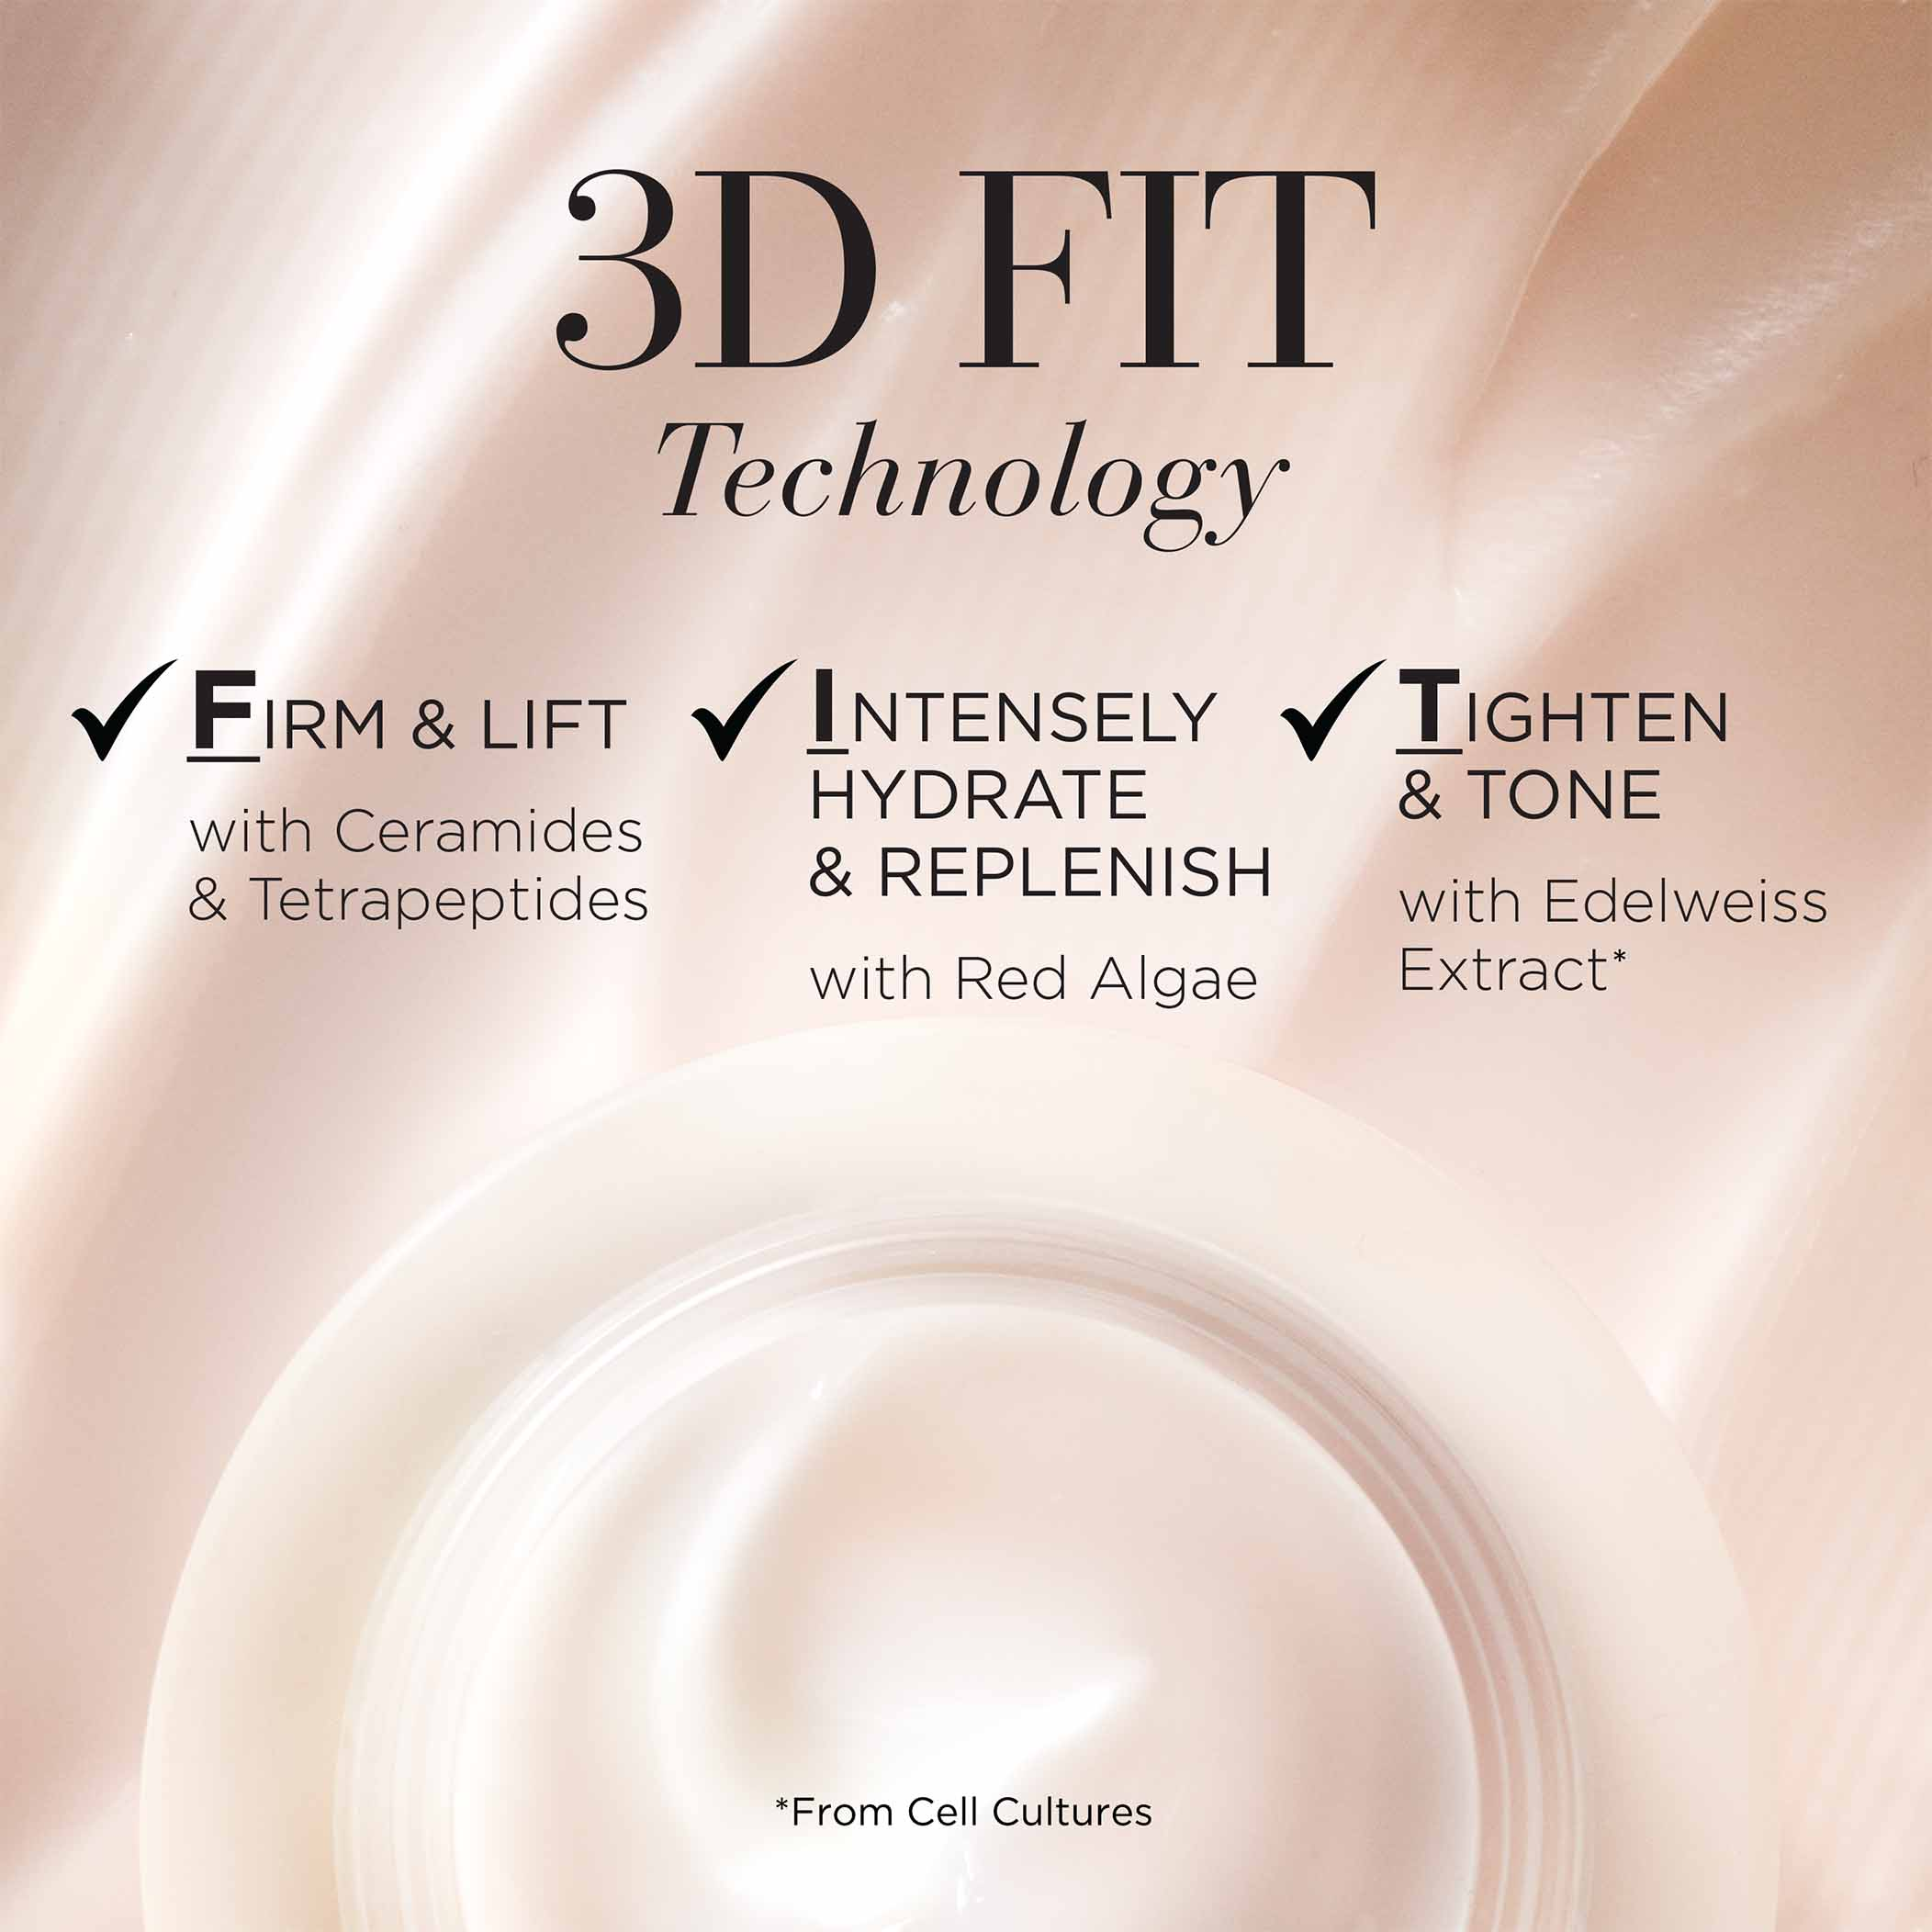 3D Fit Technology- Firm and Lift with Ceramides and Tetrapeptides, Intensely Hydrate and Replenish with red algae and Tight and Tone with Edelweiss Extract from cell cultures